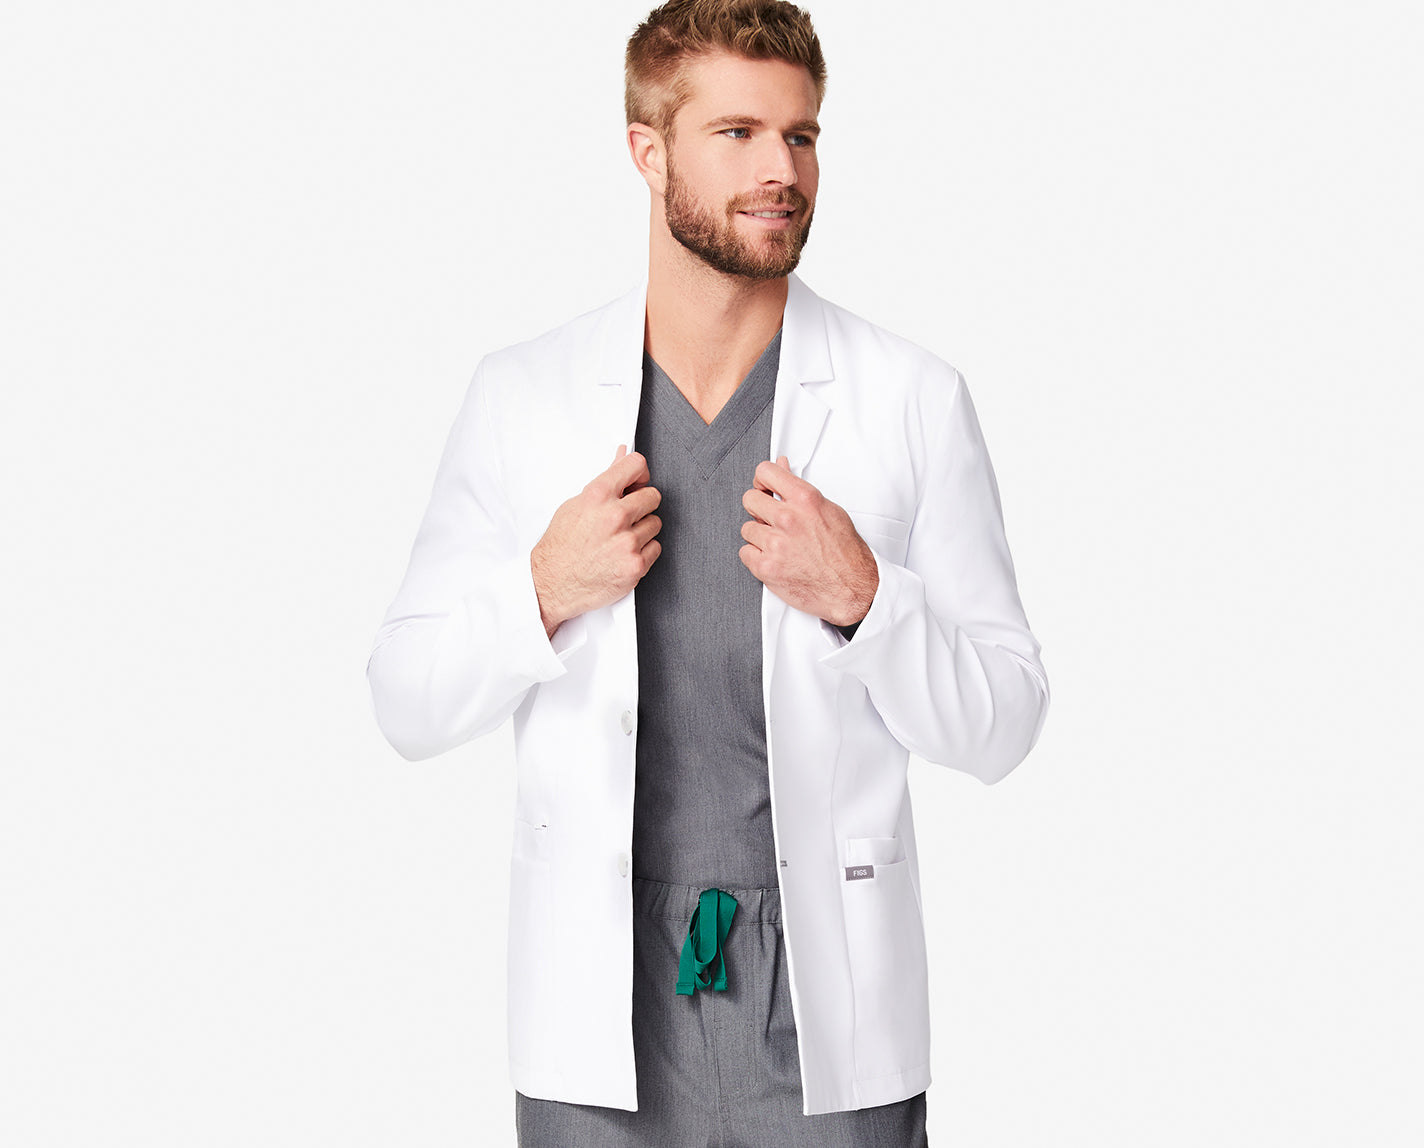 The Harlem's got some serious smarts. Featuring a traditional lapel collar, straight finished hem, classic fit, EIGHT pockets, and liquid-repellent finish, this short lab coat is smart on tailored style and hard-working function — he's a keeper.